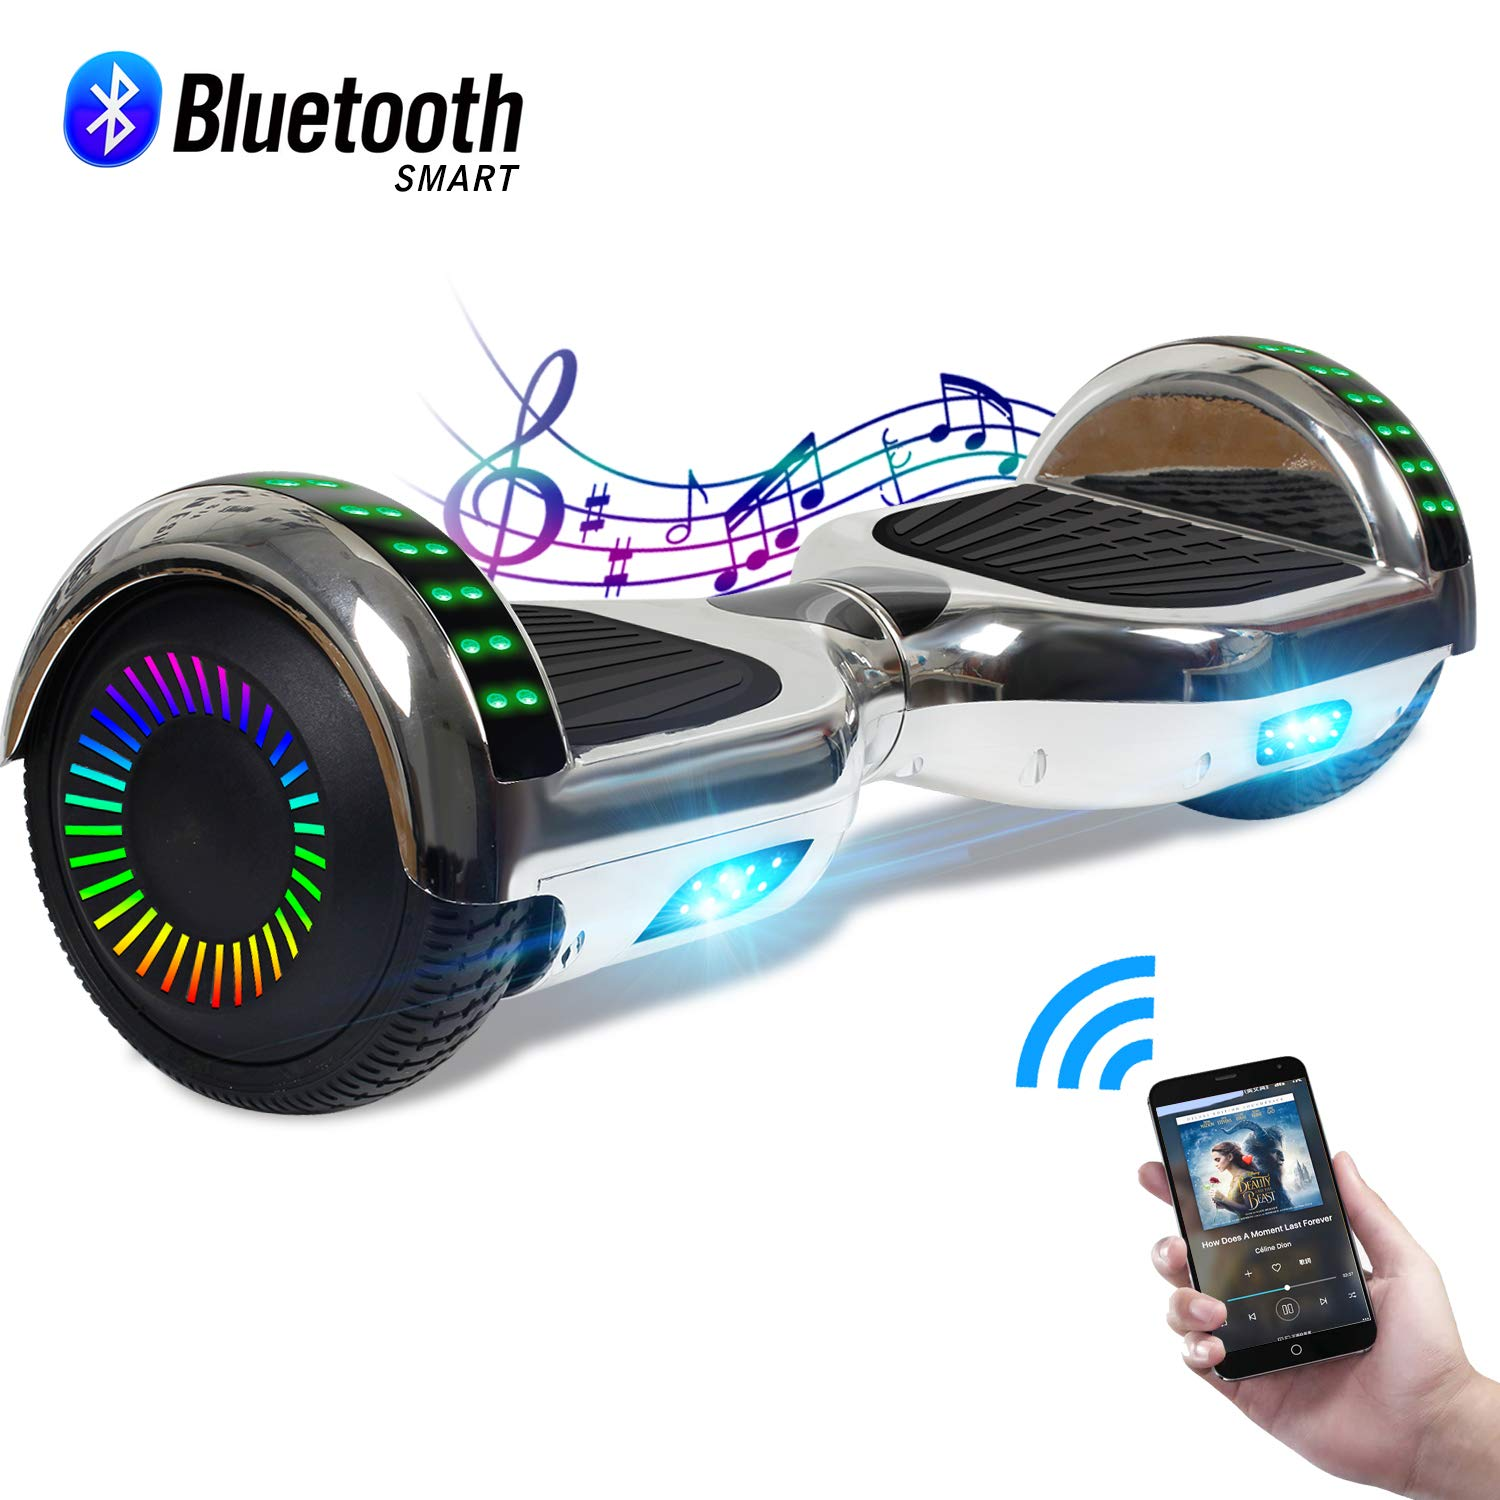 CBD Chrome Hoverboard for Kids, 6.5 Bluetooth Self Balancing Hoverboard, Hoverboard with Bluetooth and LED Lights, UL 2272 Certified Hover Board